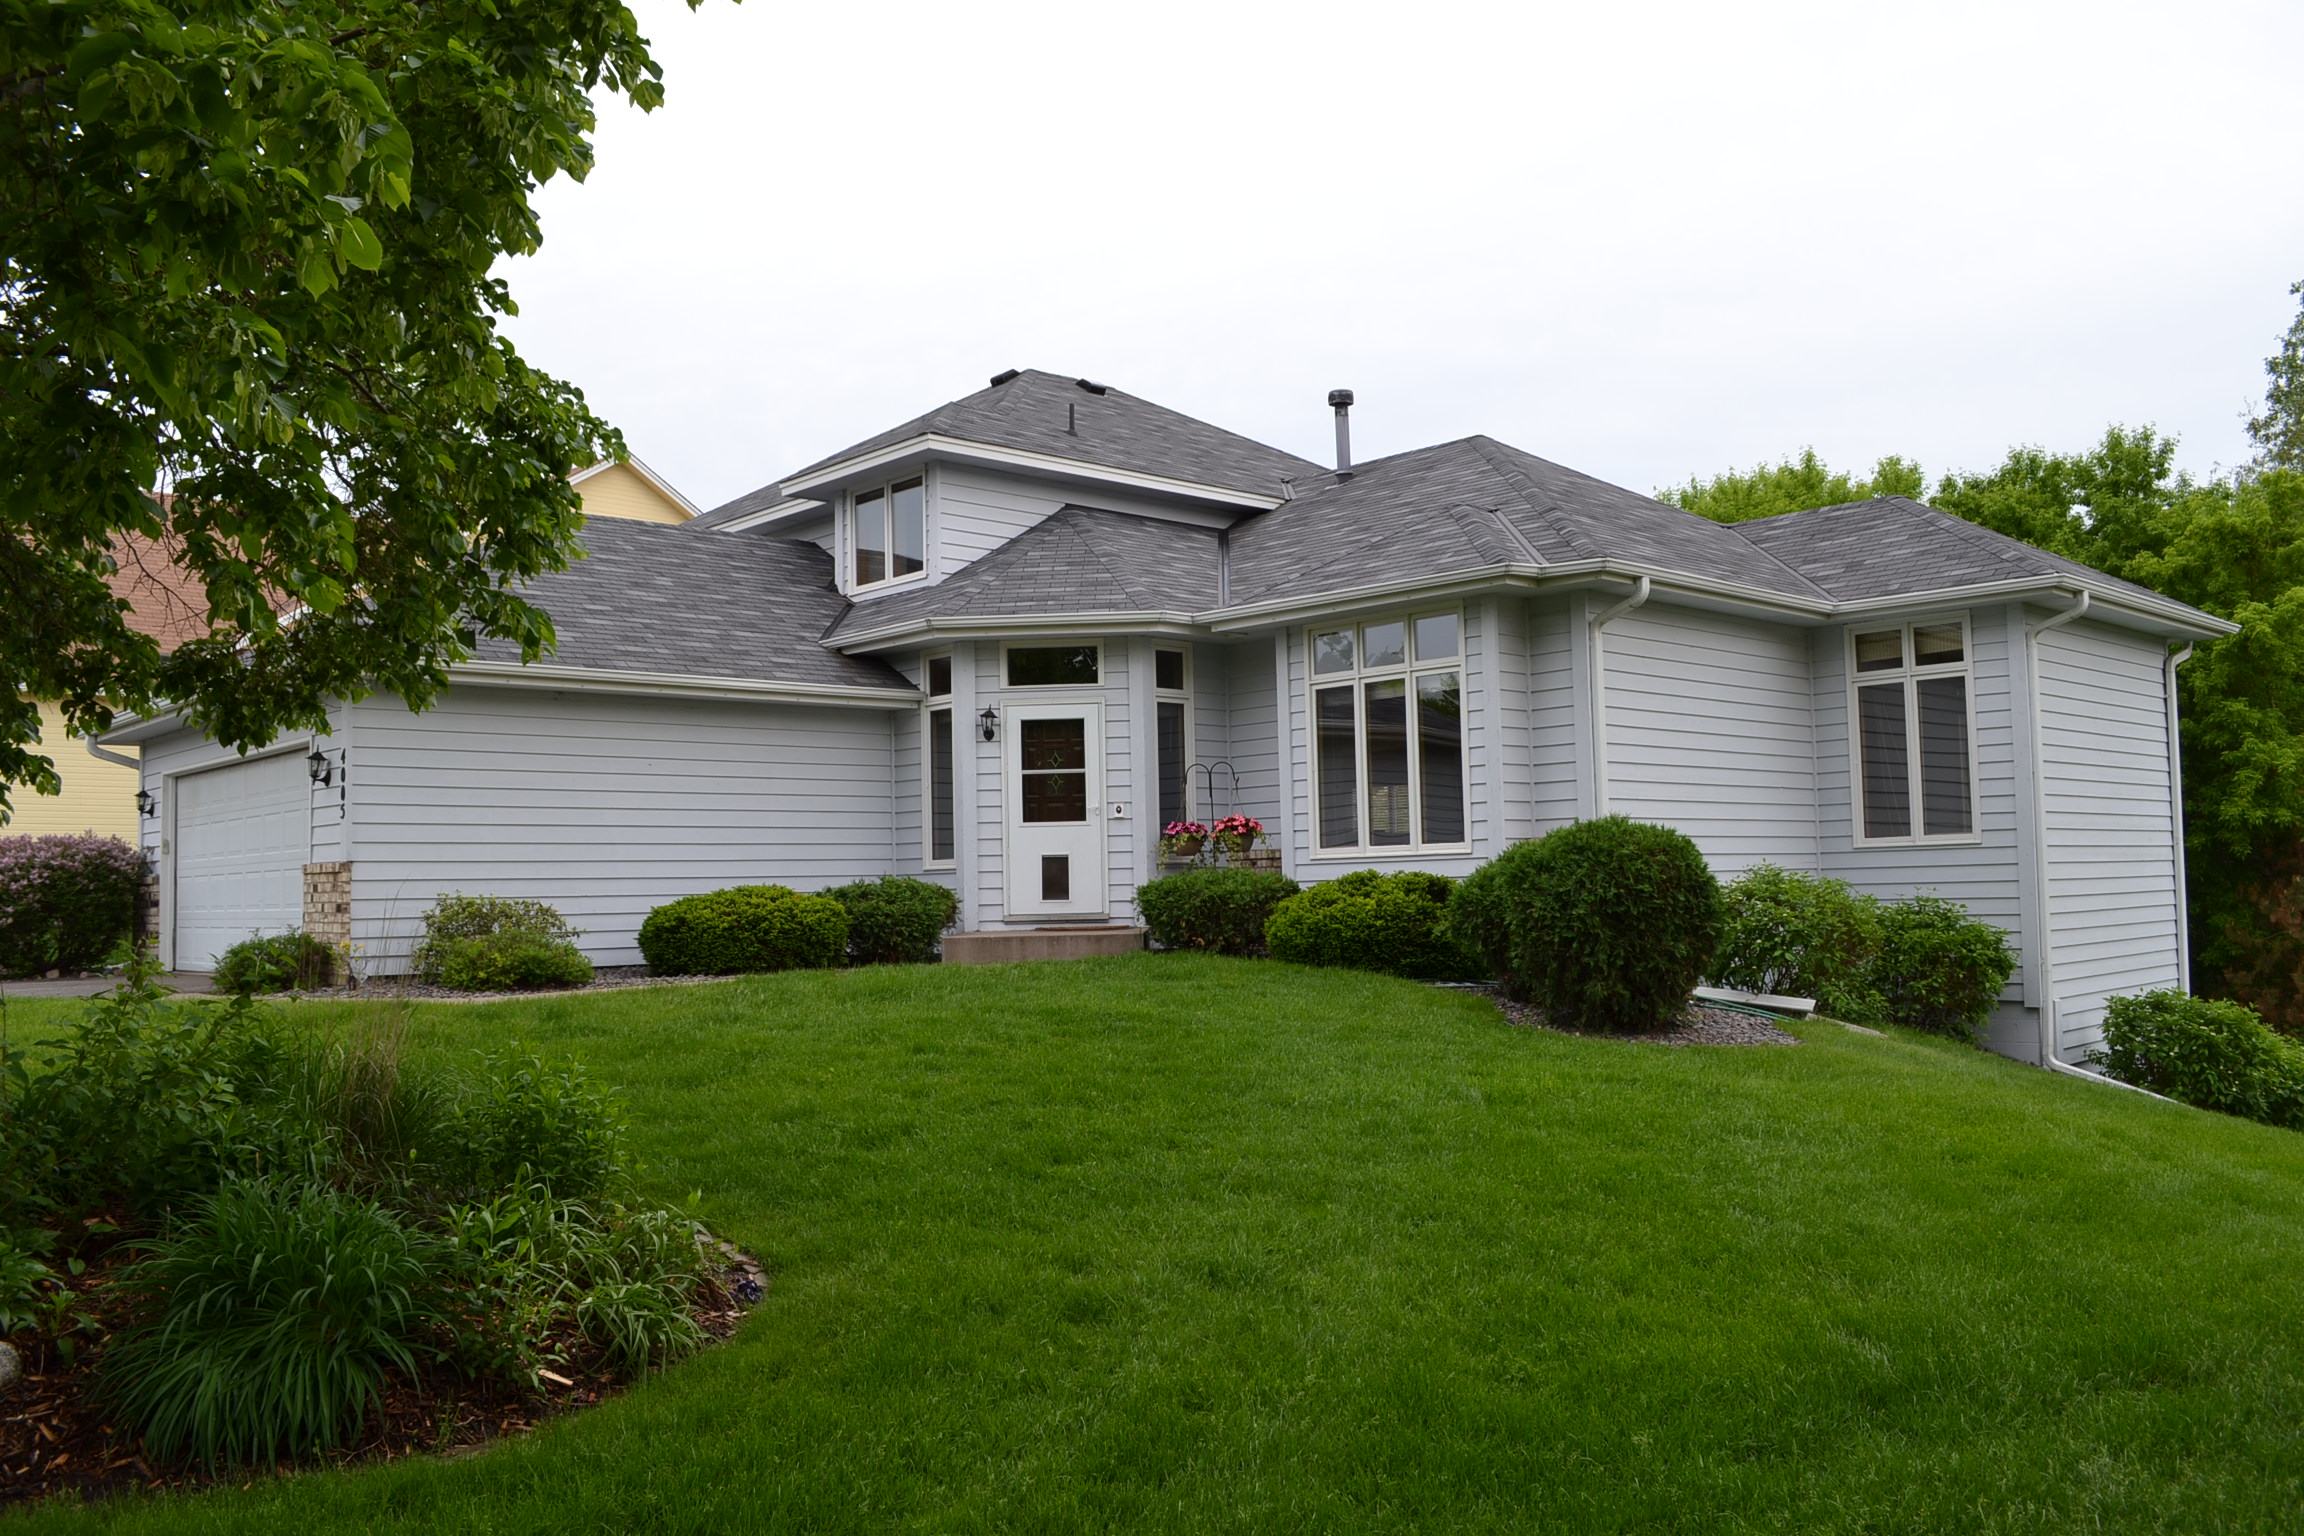 new listing homes for sale in plymouth mn tim landon remax lake minnetonka home team